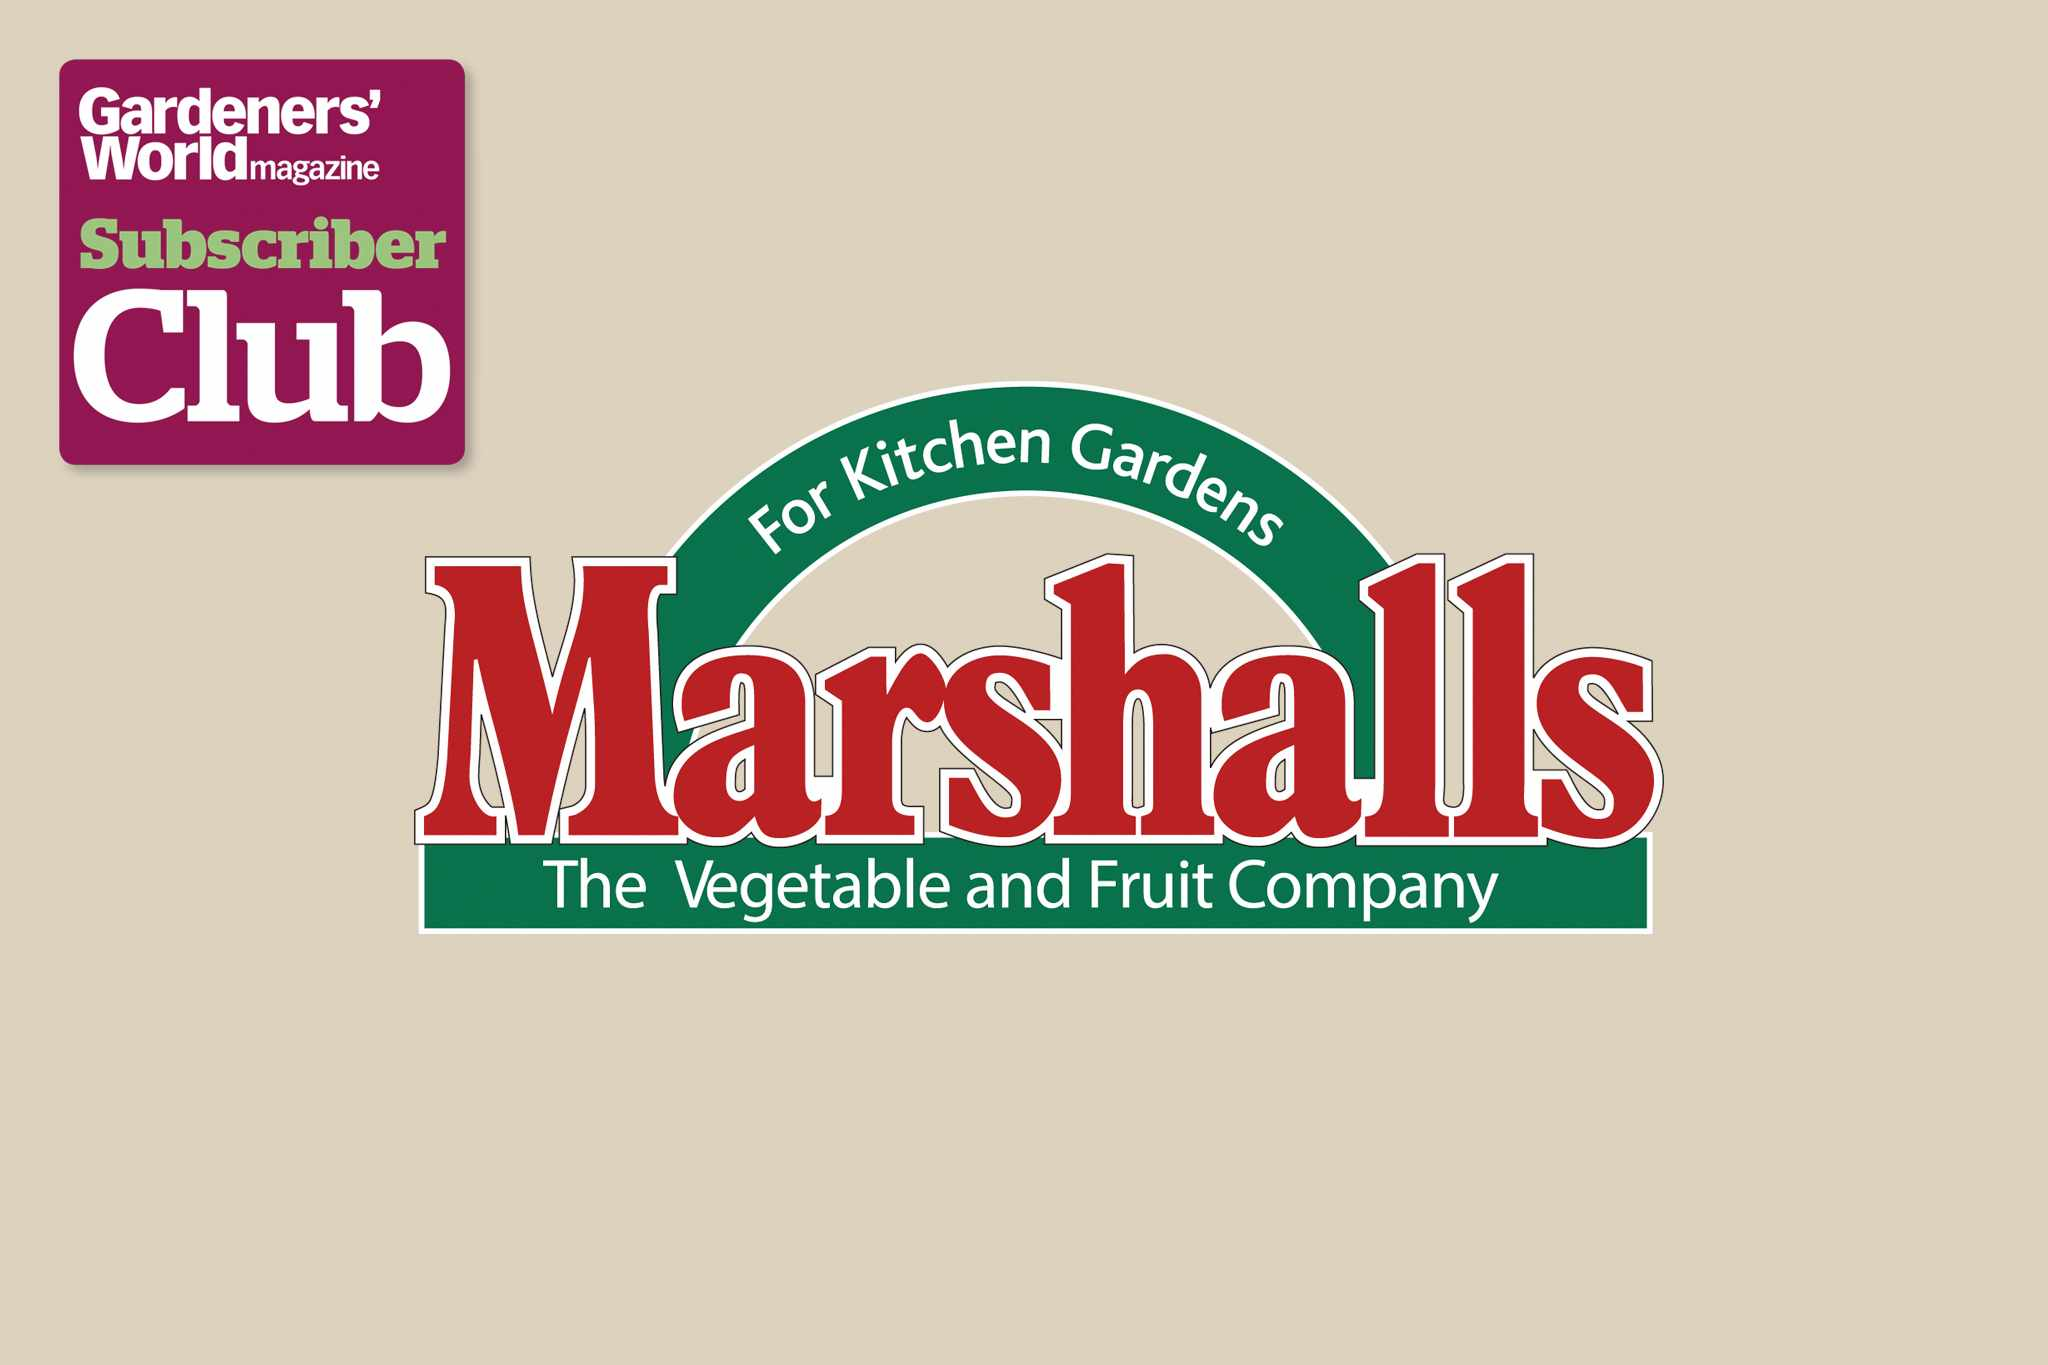 Marshalls BBC Gardeners' World Magazine Subscriber Club discount